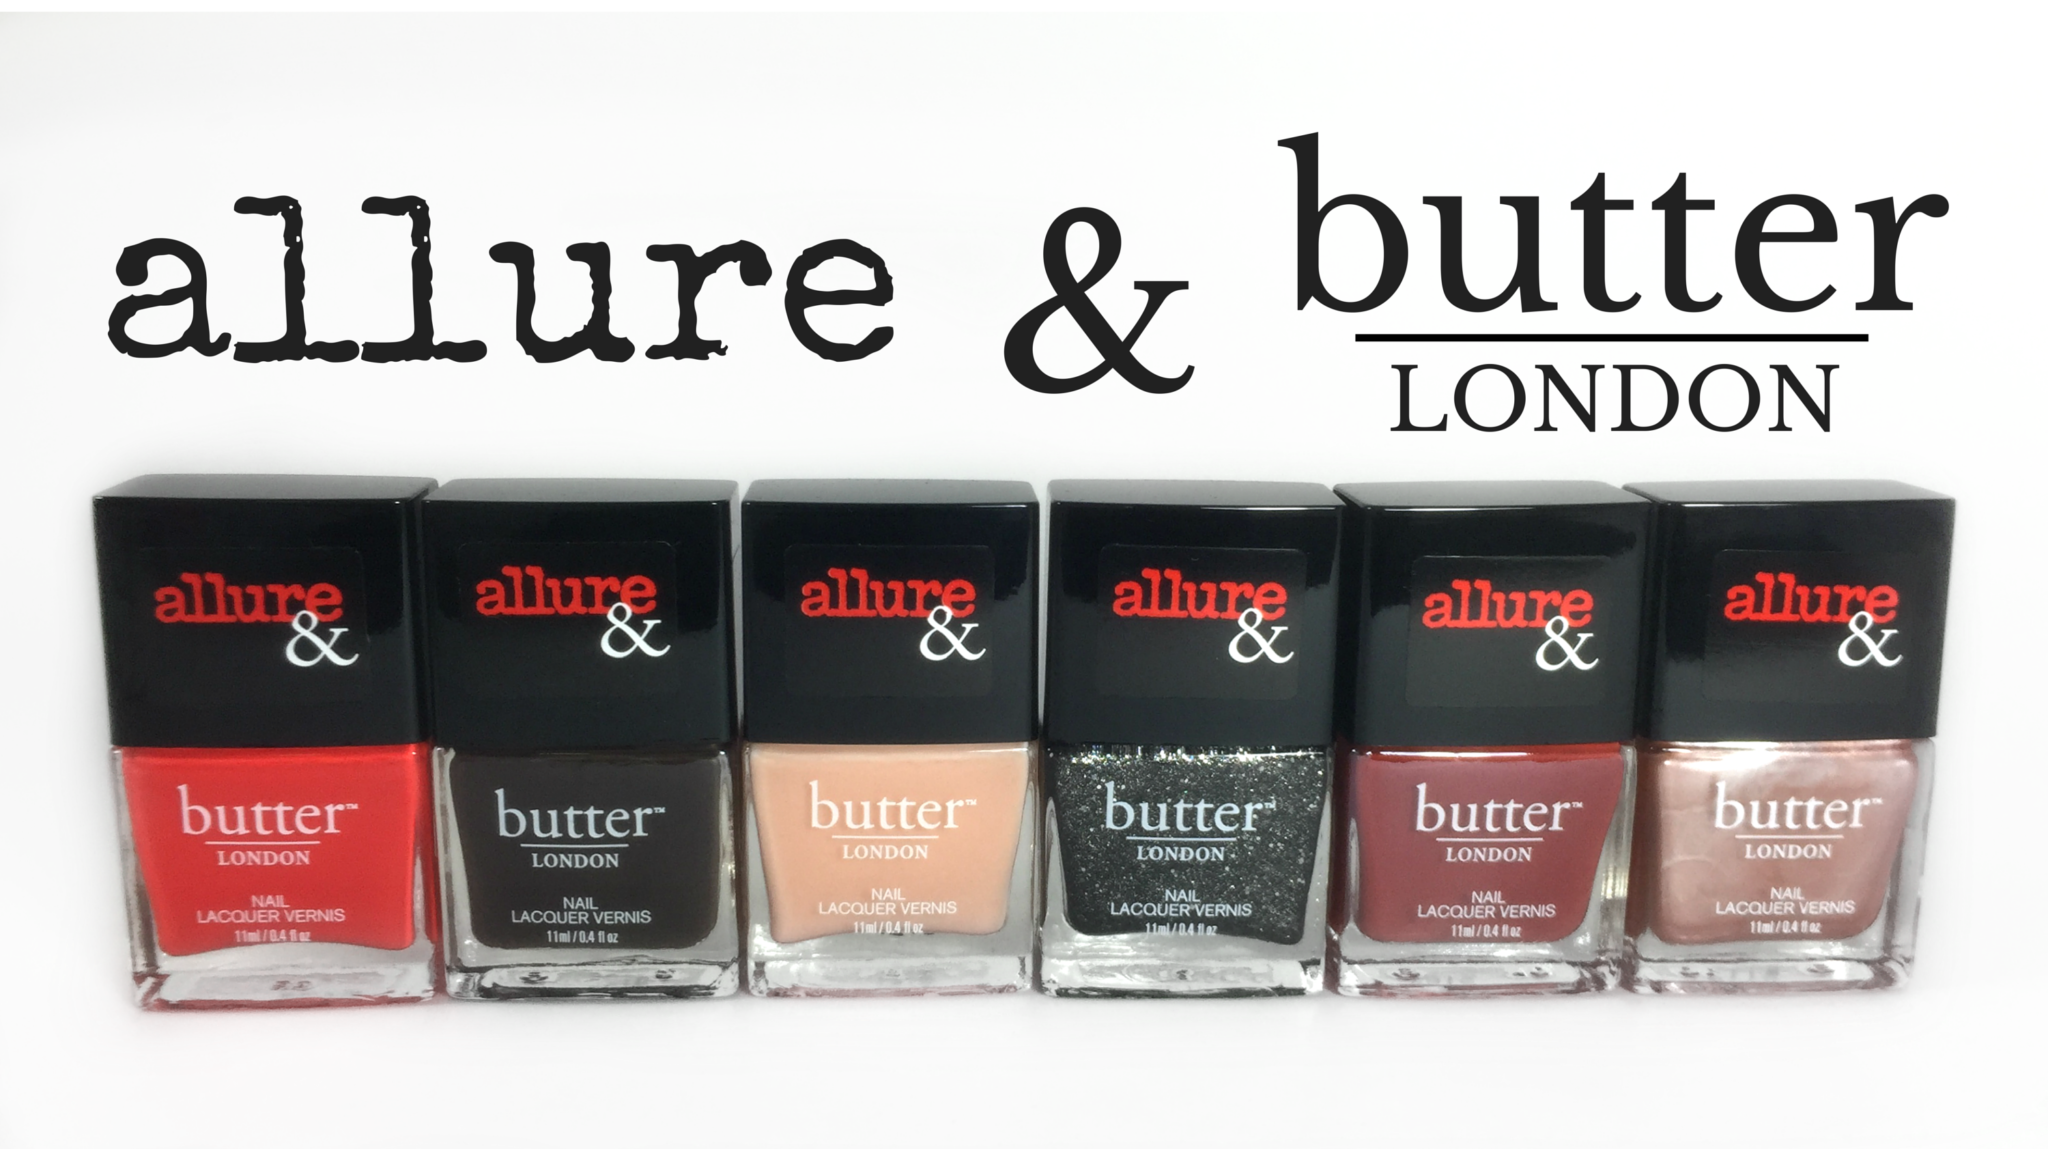 The Allure & Butter London Arm Candy Collection | Review & Giveaway! - The Feminine Files